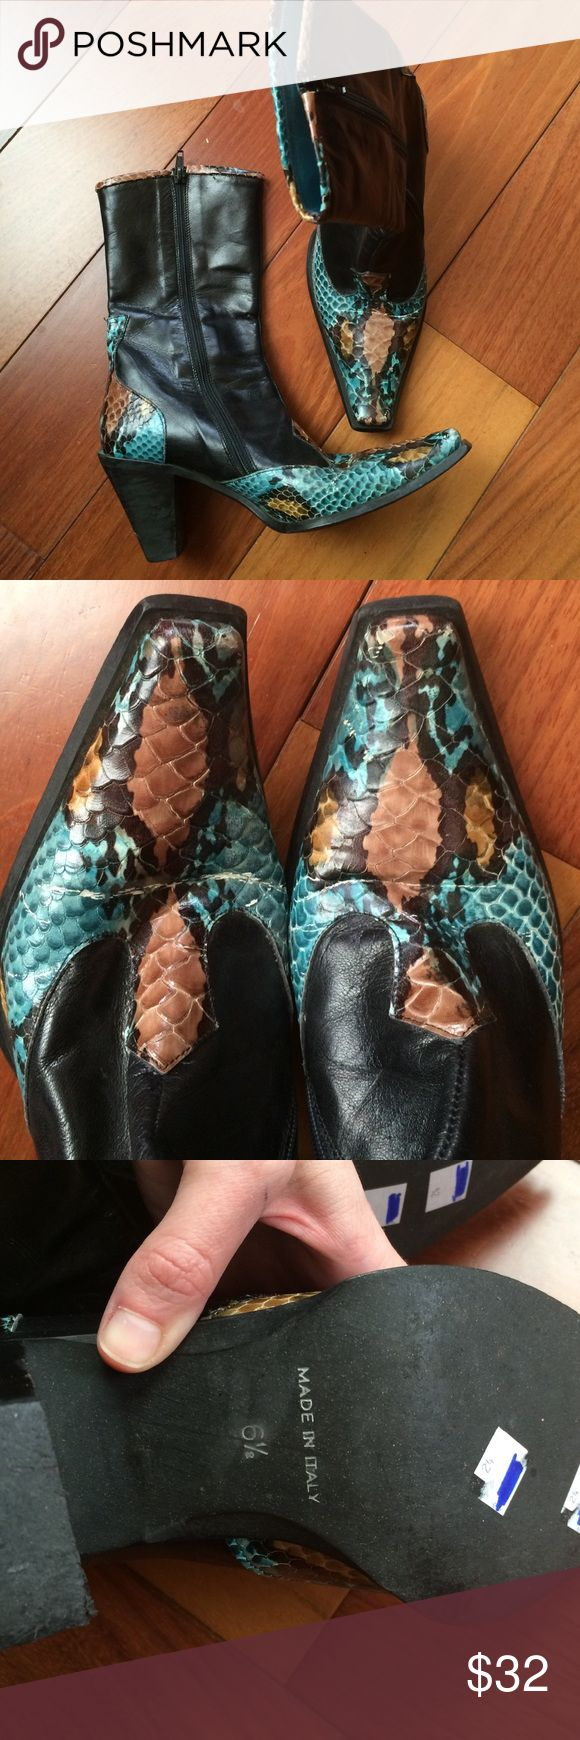 Enzo Angiolini Snakeskin Cowboy Boots Leather Sole shows some wear, minor cracking at top on color, see pics. Leather in great shape. 6.5 could fit a narrower 7 Enzo Angiolini Shoes Heeled Boots